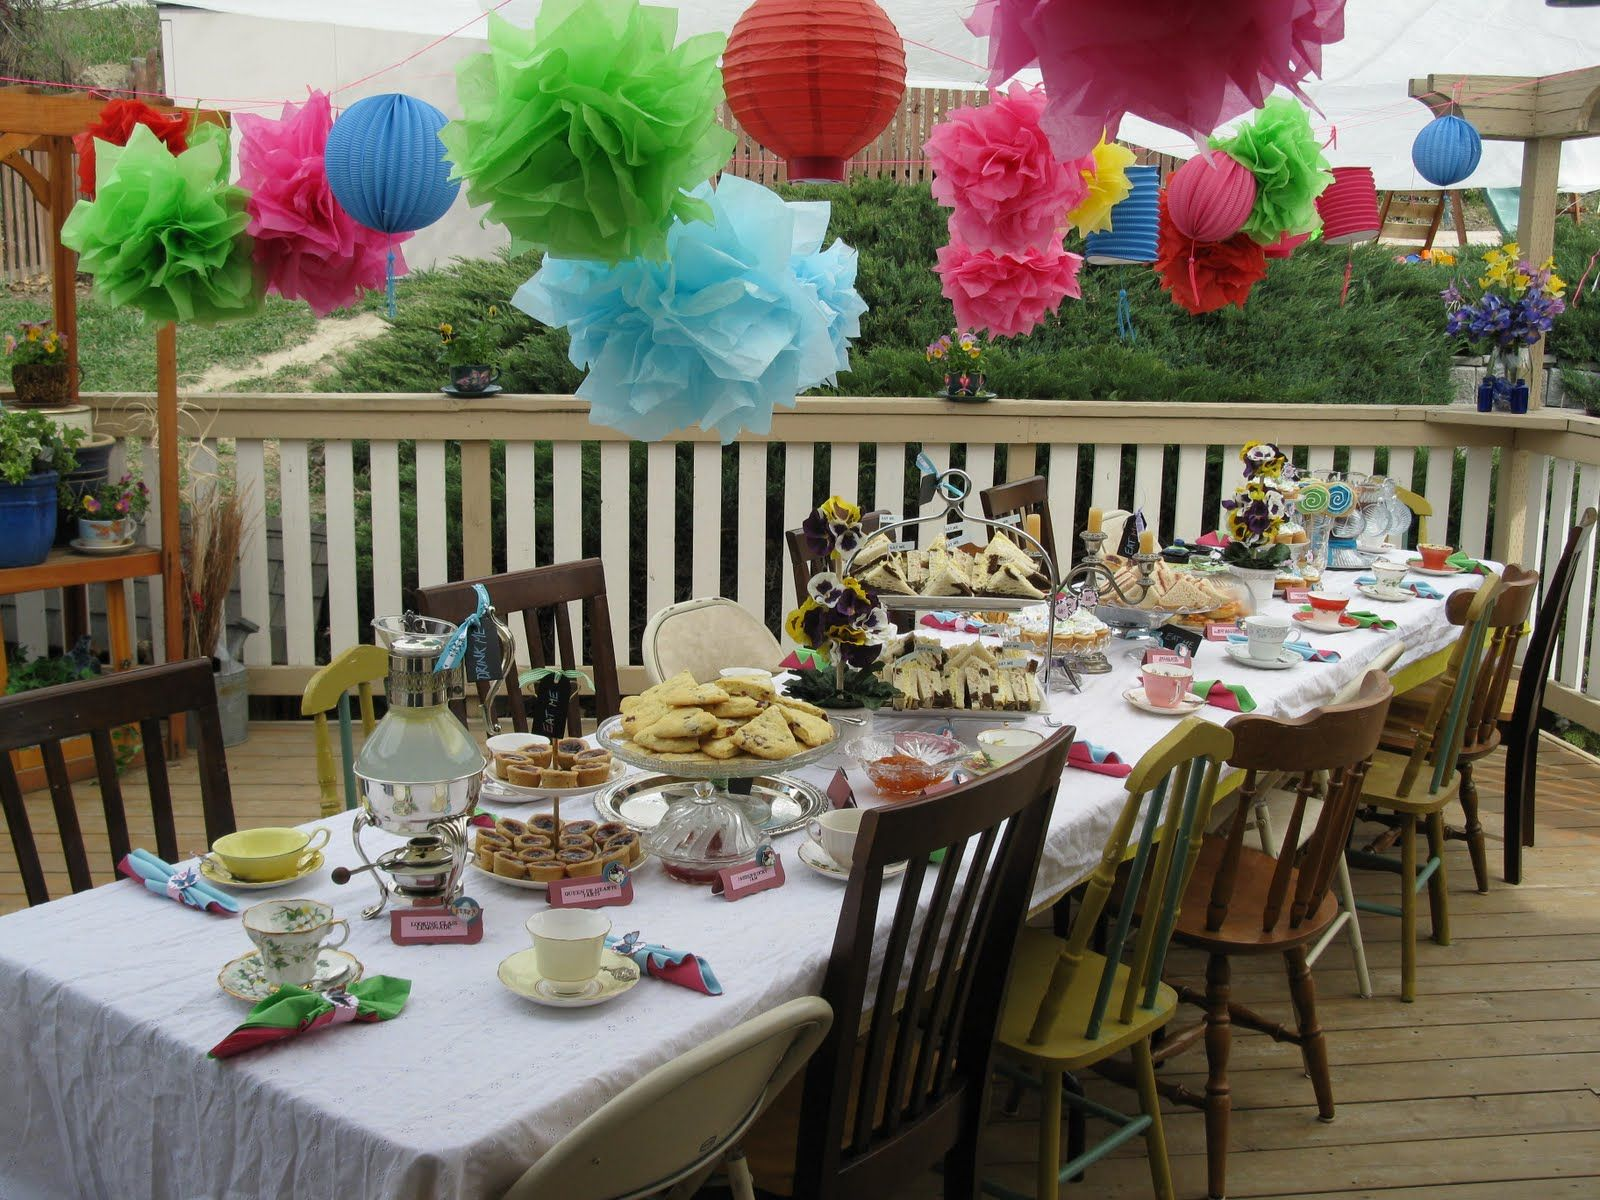 Mad hatter tea party decoration ideas - Mad Hatter Tea Party Part Ii